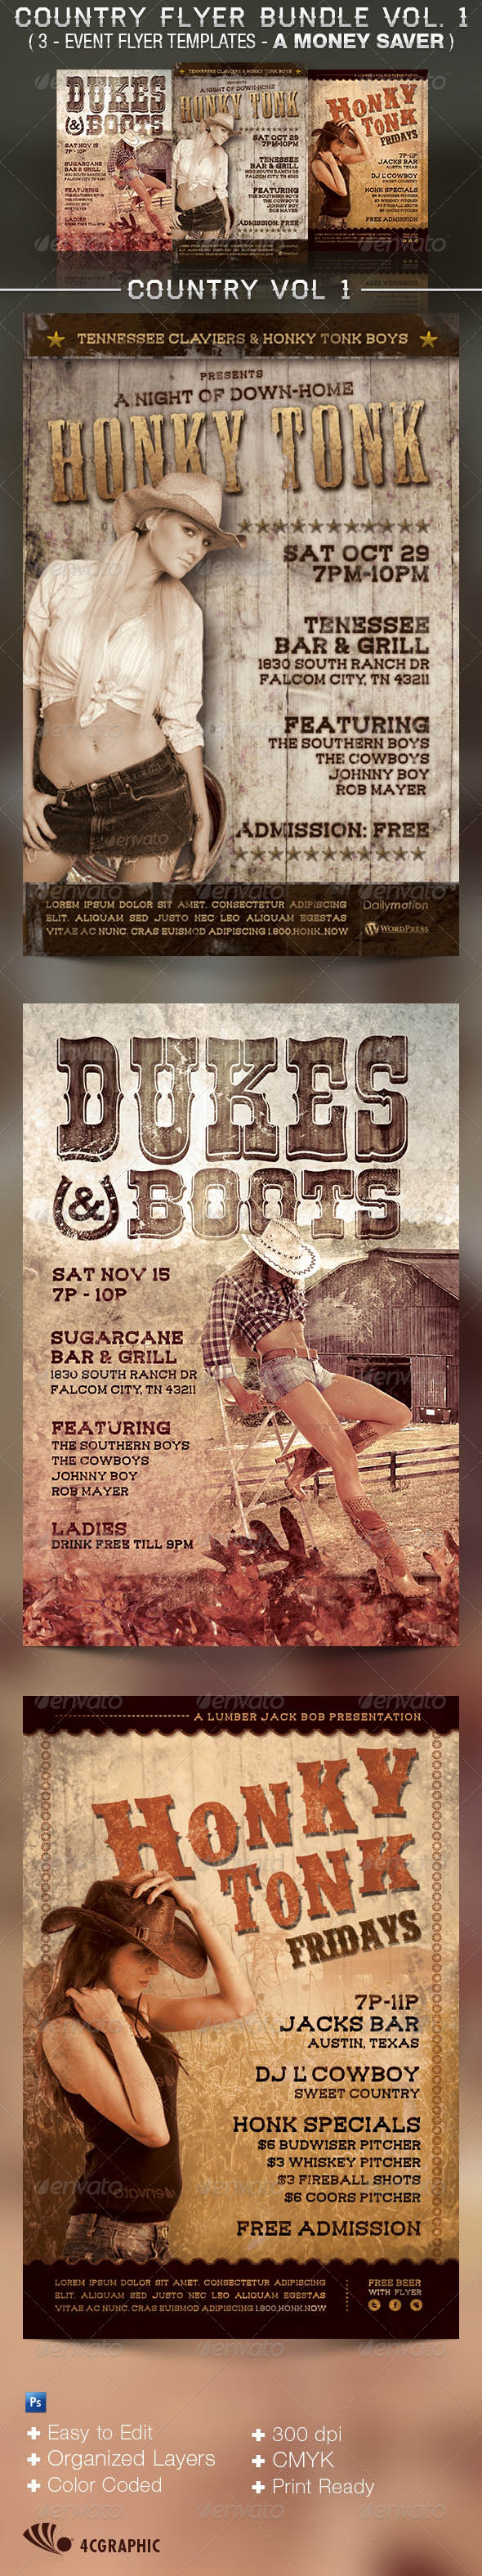 GraphicRiver Honky Tonk Flyer Bundle Vol 1 3627358